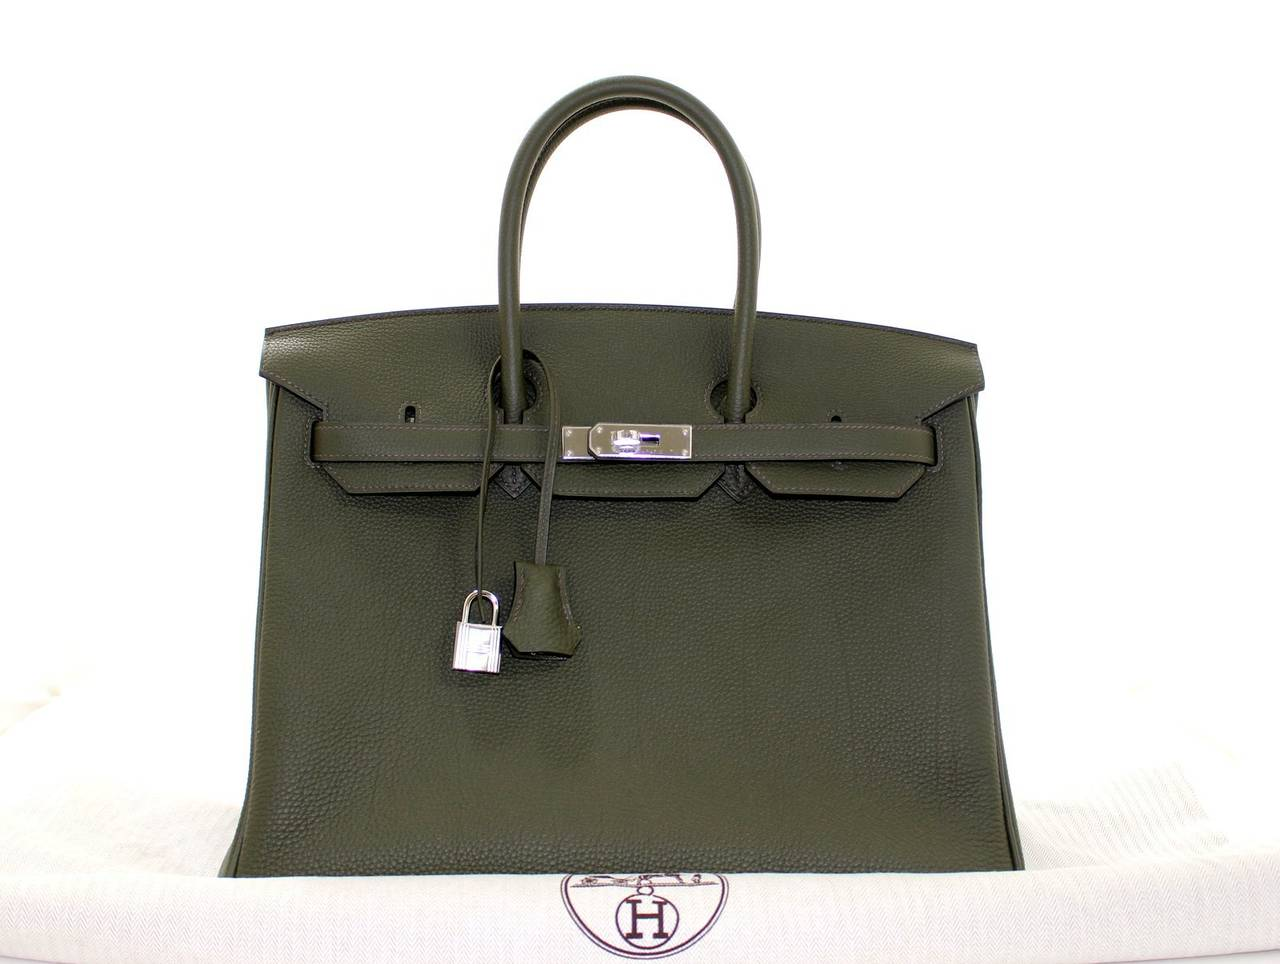 Hermes Birkin Bag in Vert Olive green Togo Leather, 35 cm size 10